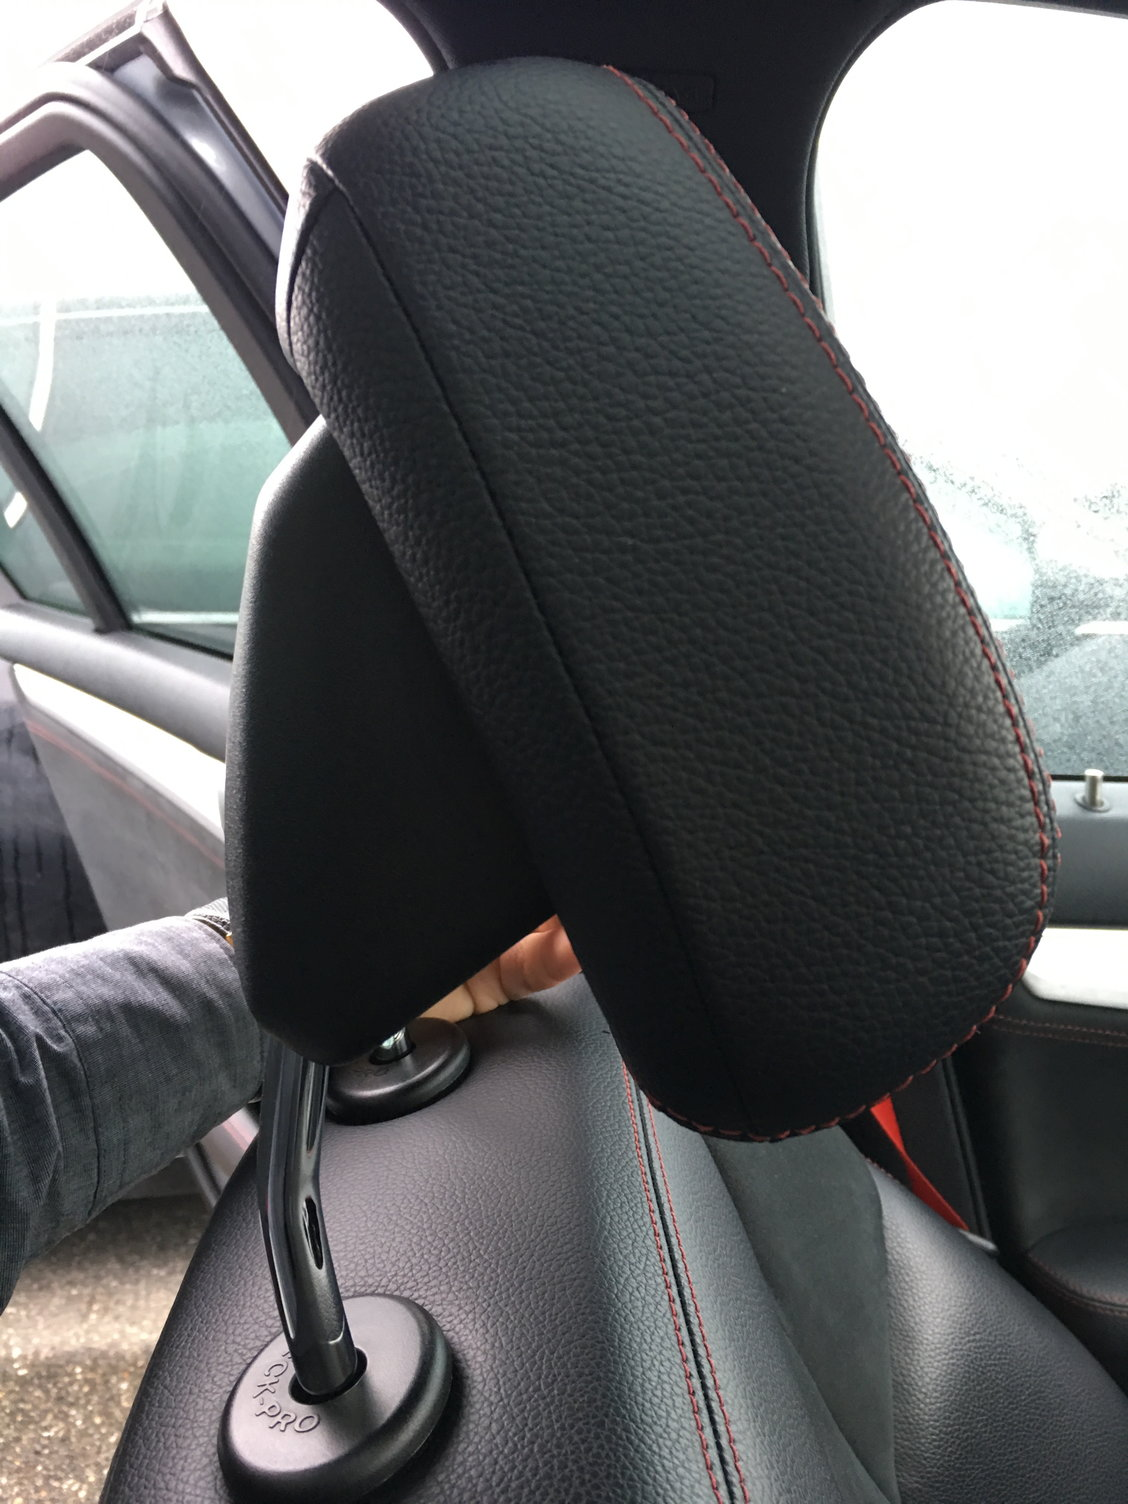 Broken headrest from repeated use - MBWorld org Forums